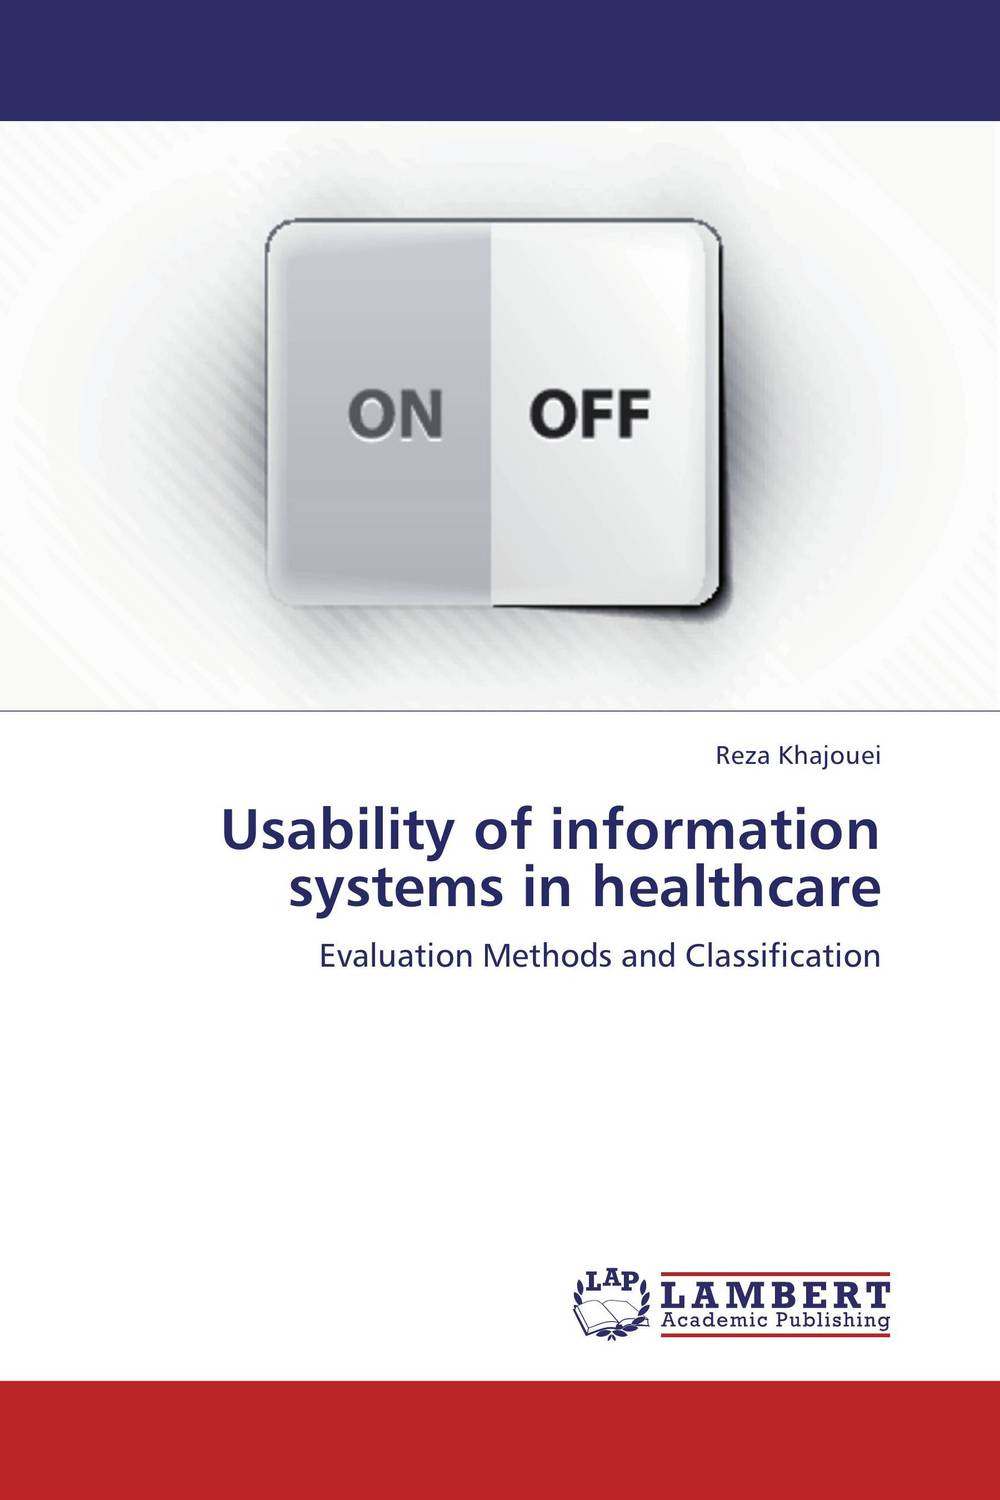 Usability of information systems in healthcare global issues in health care systems